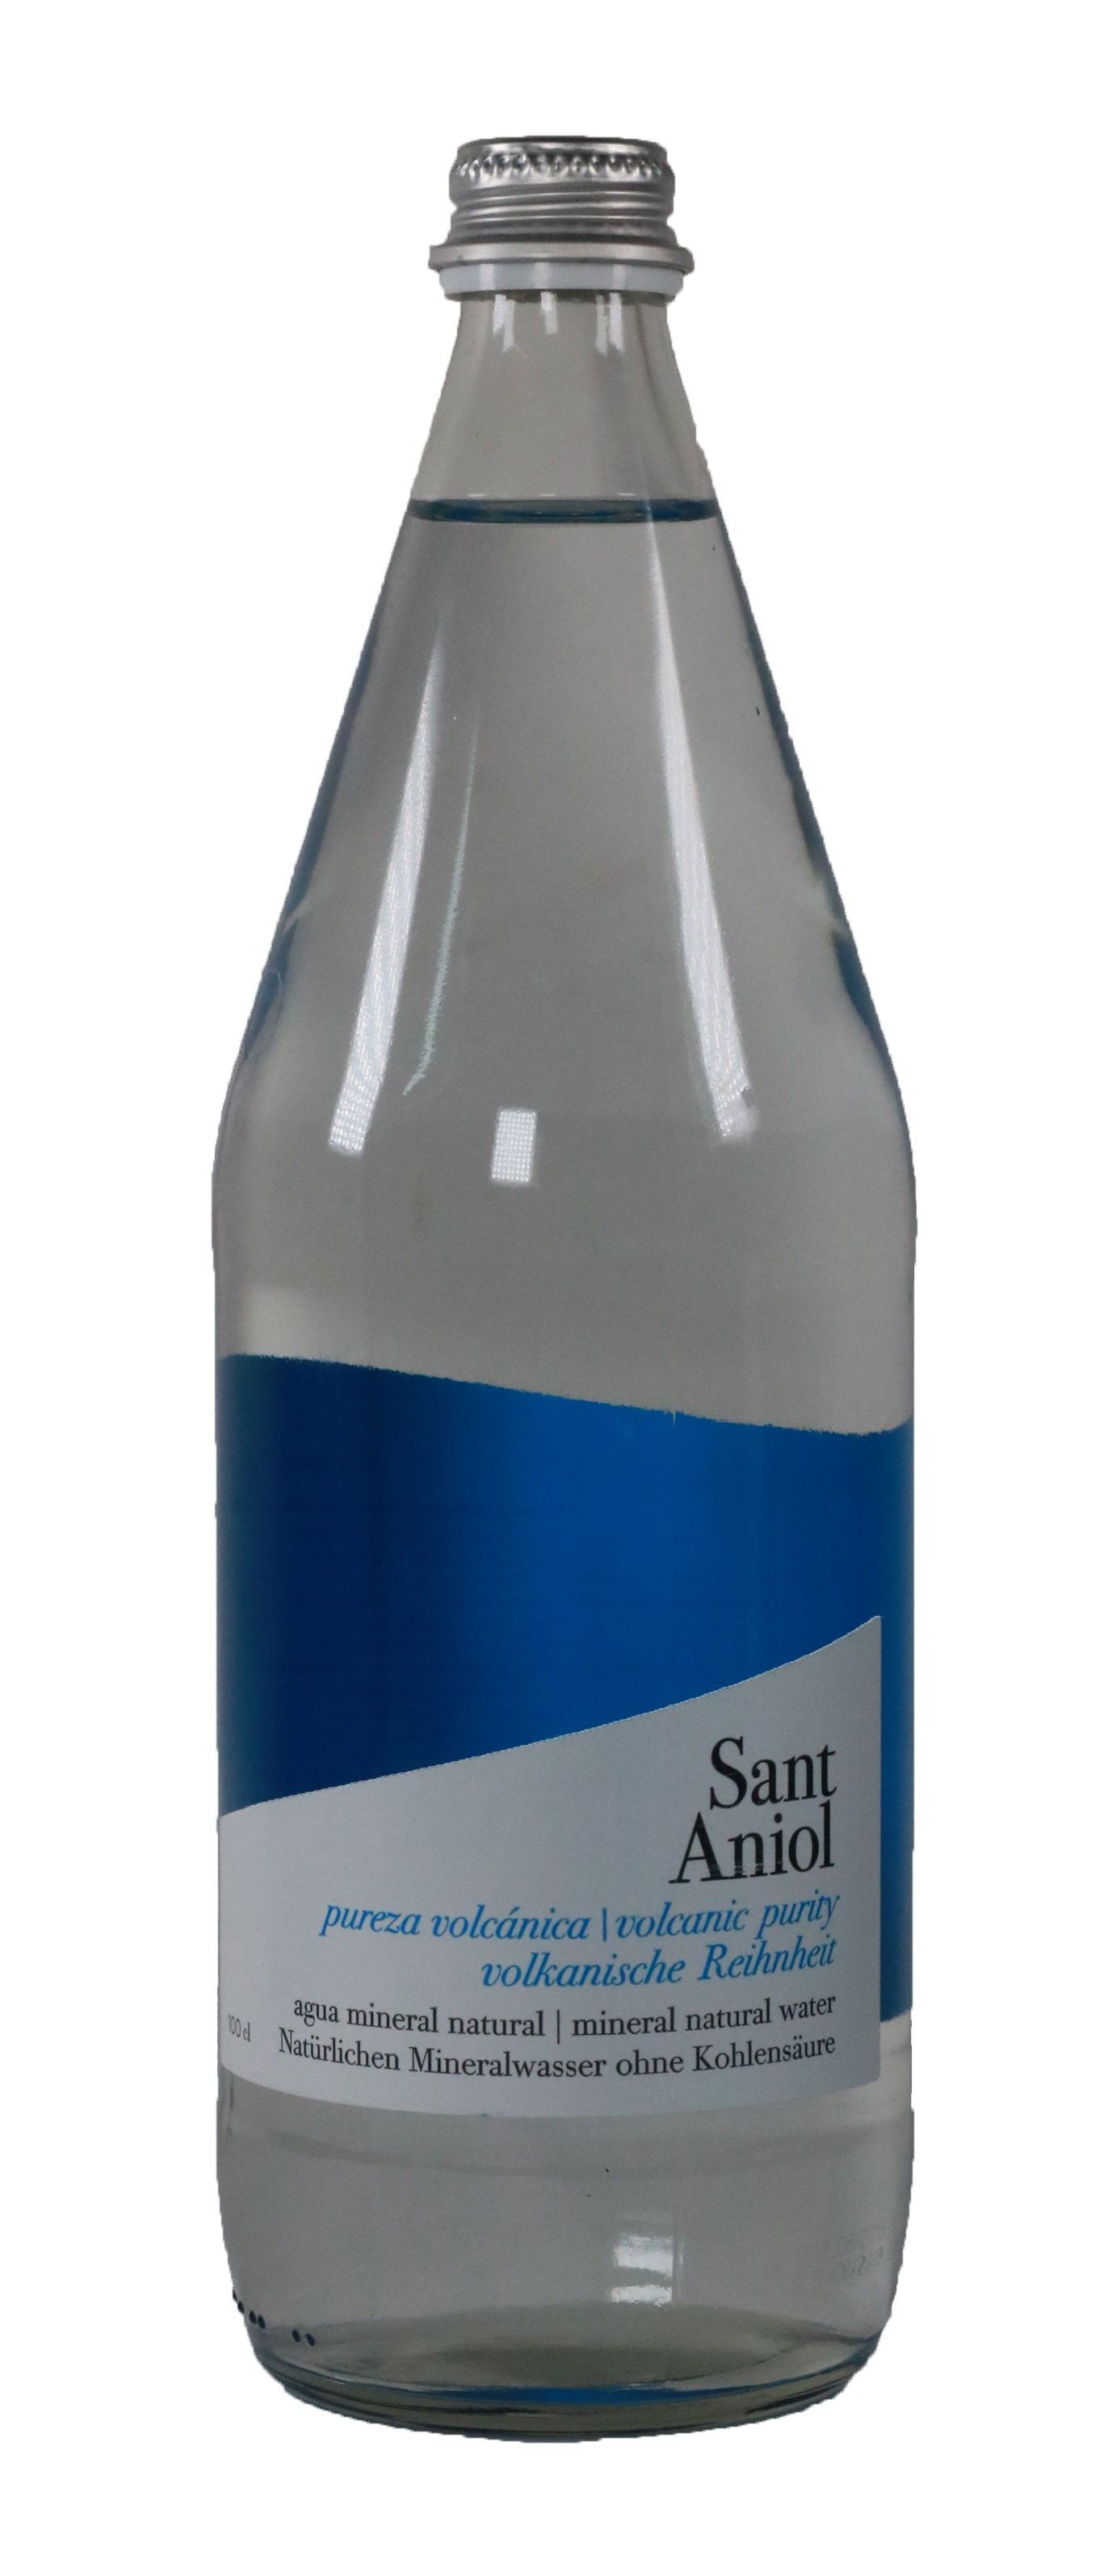 Sant Aniol Volcanic Purity Natural Mineral Water 75cl 15 Bottle